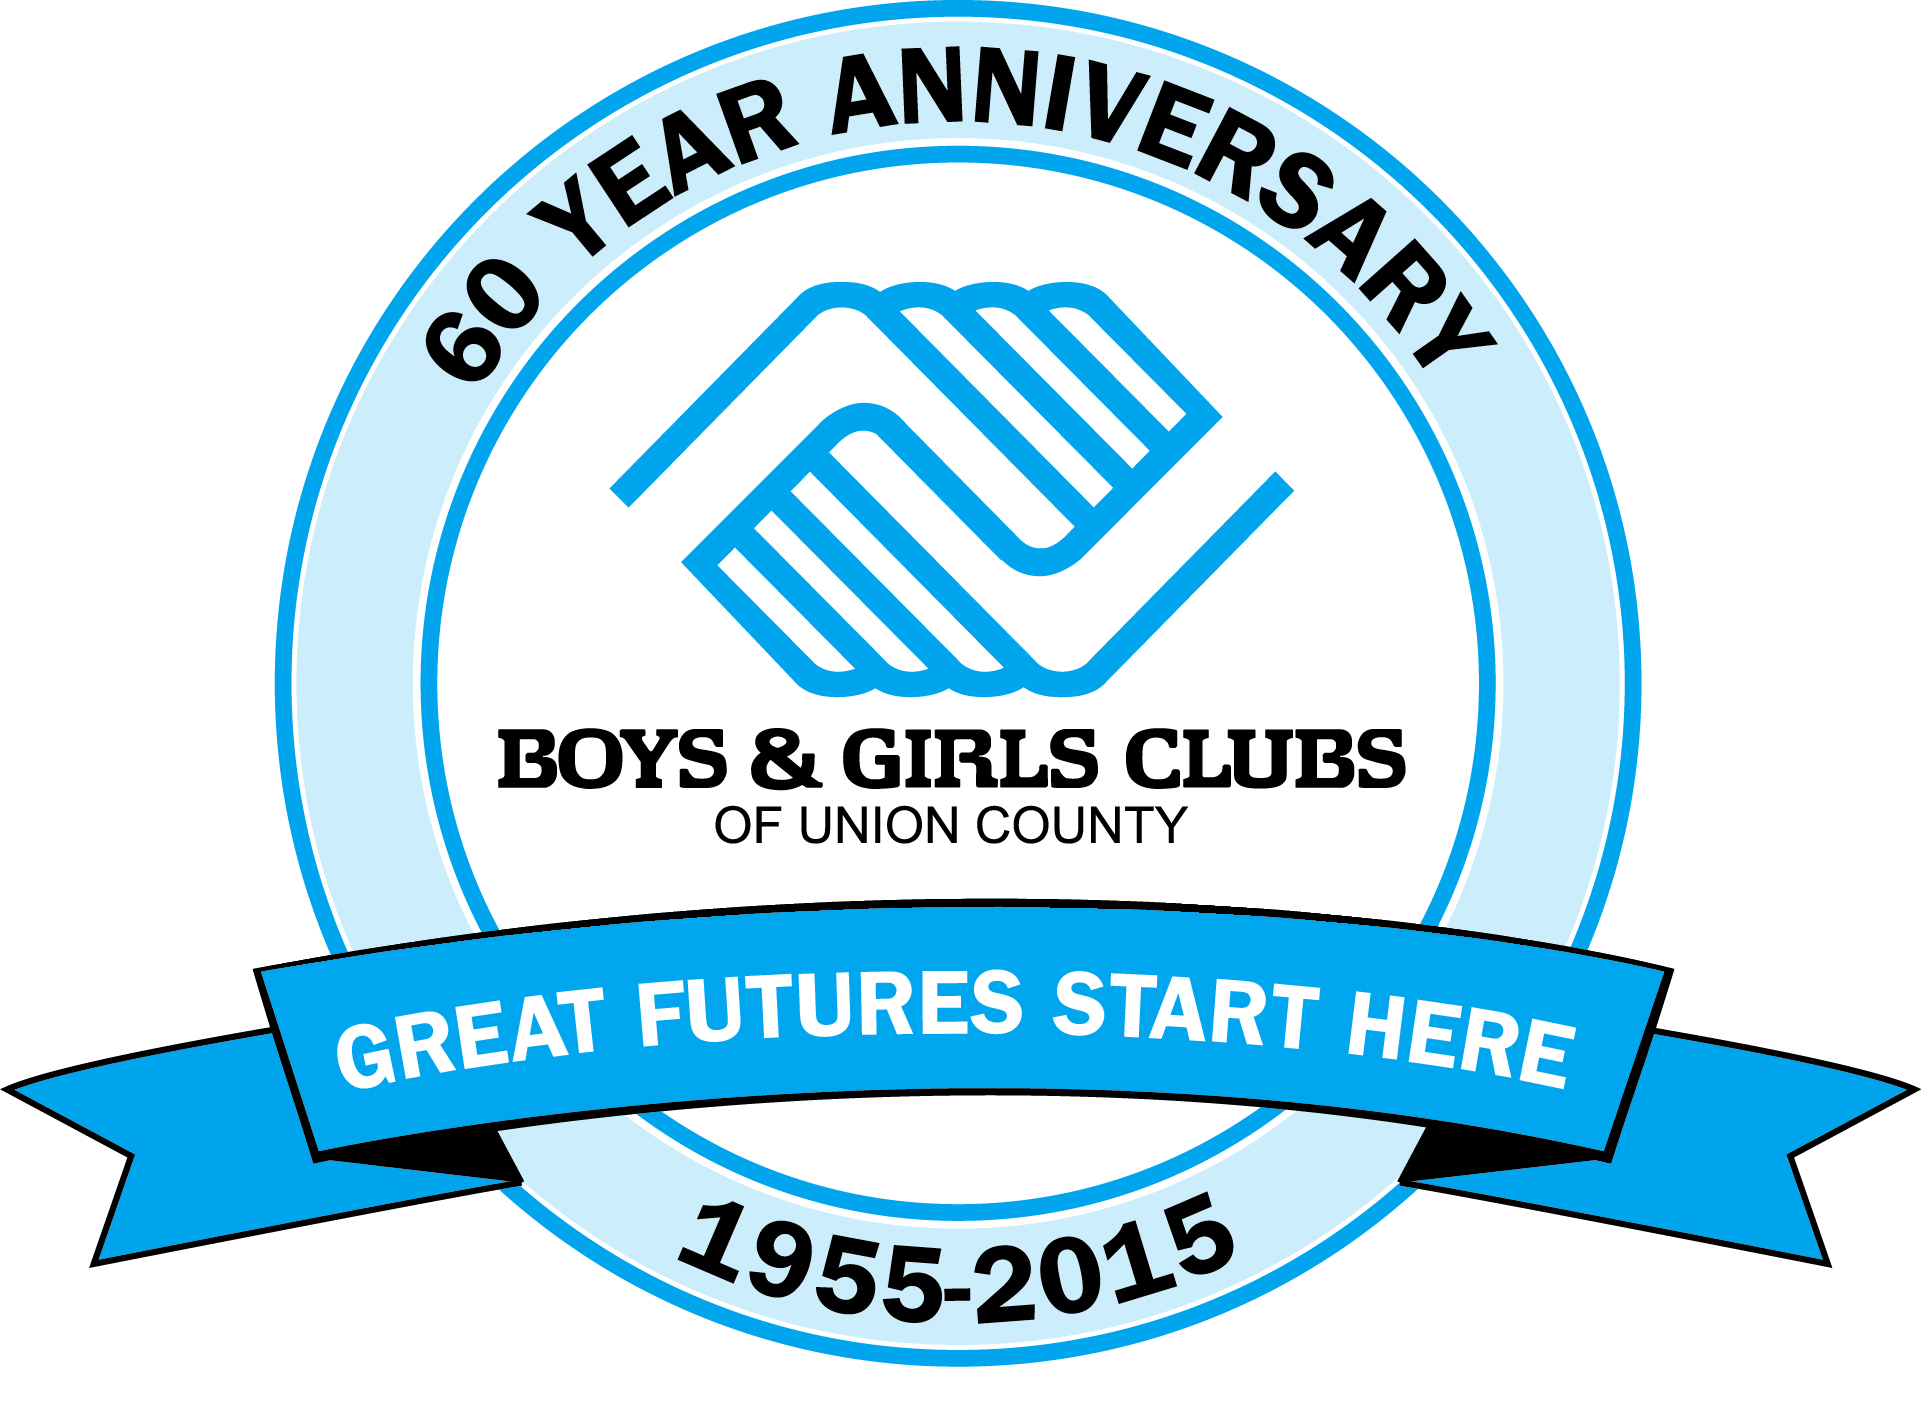 90fbb21dcb90822d6186_Boys__Girls_Club_60th_Anniversary_logo.jpg